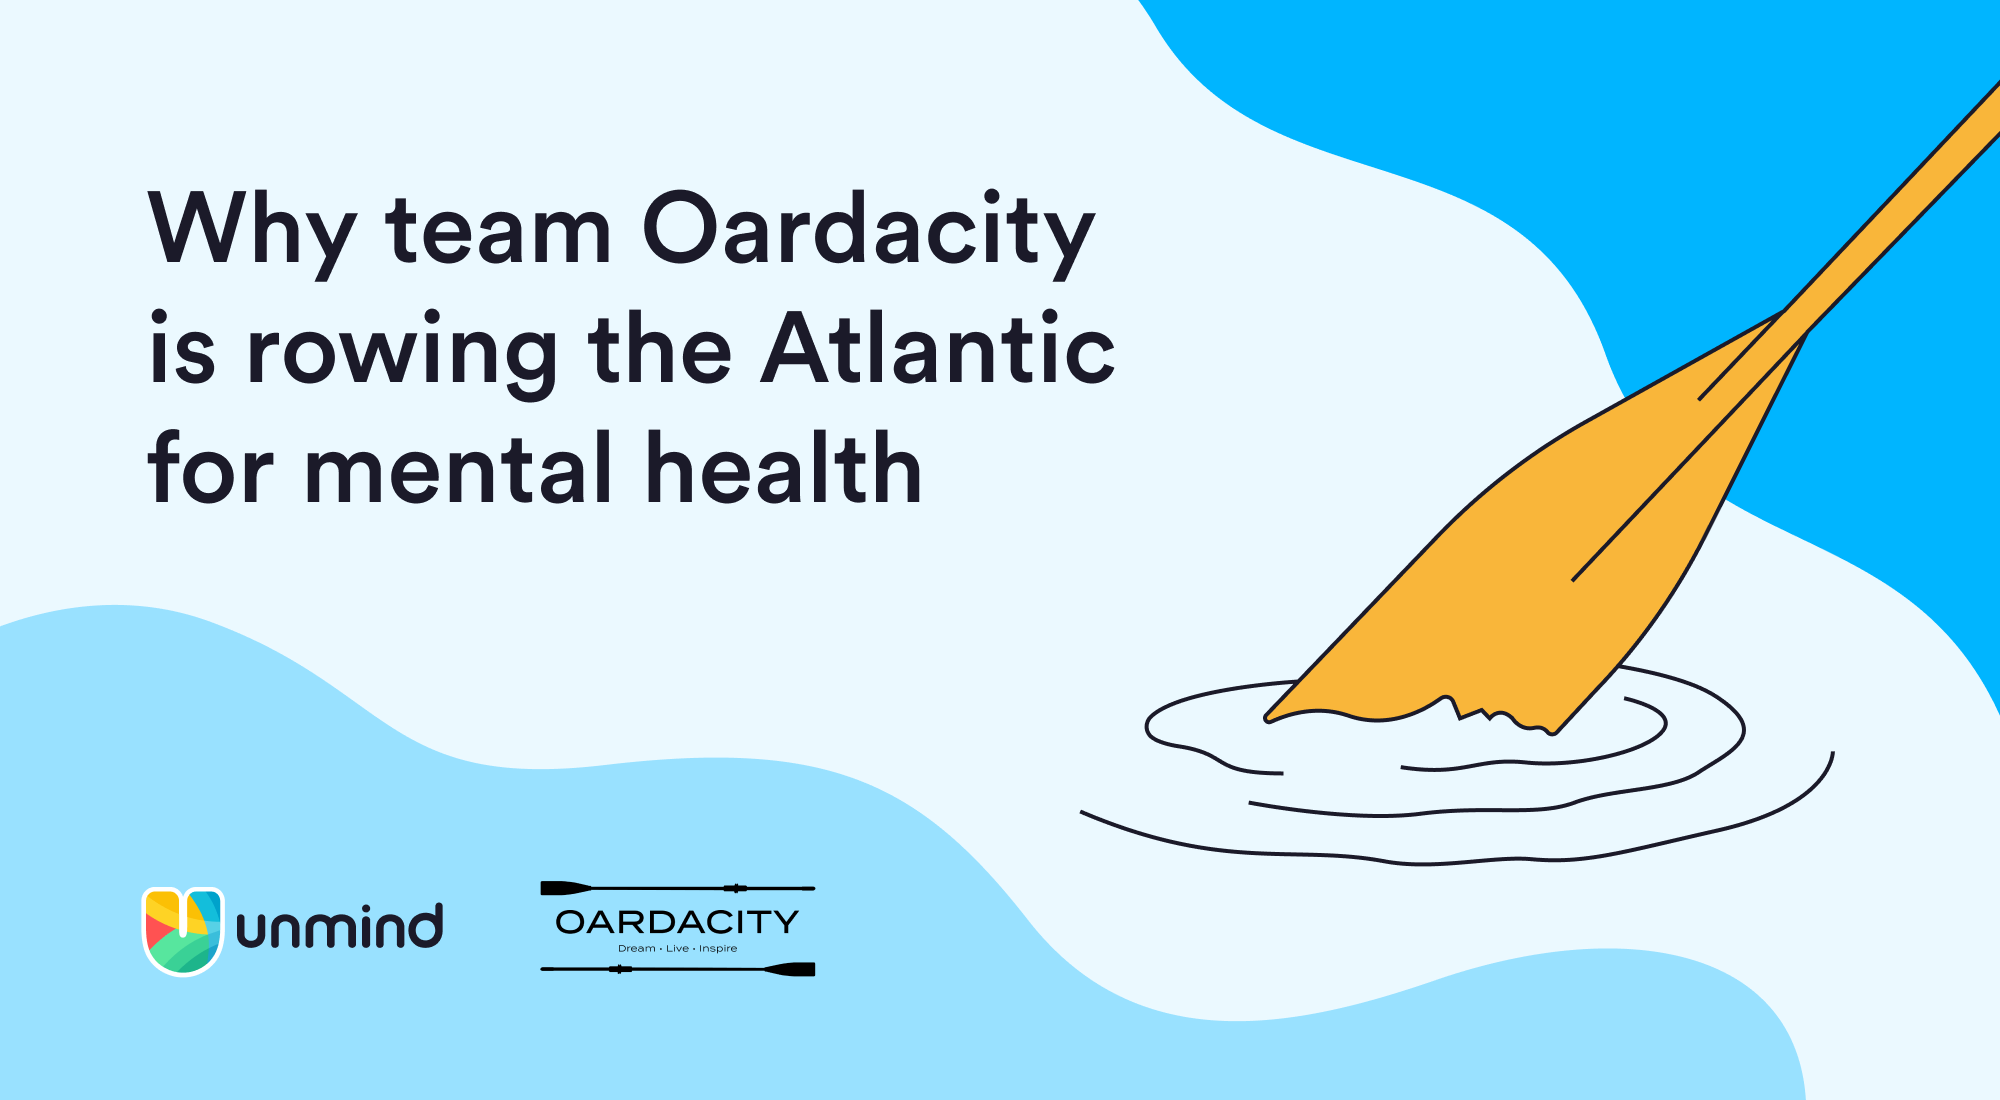 Why team Oardacity is rowing the Atlantic for mental health